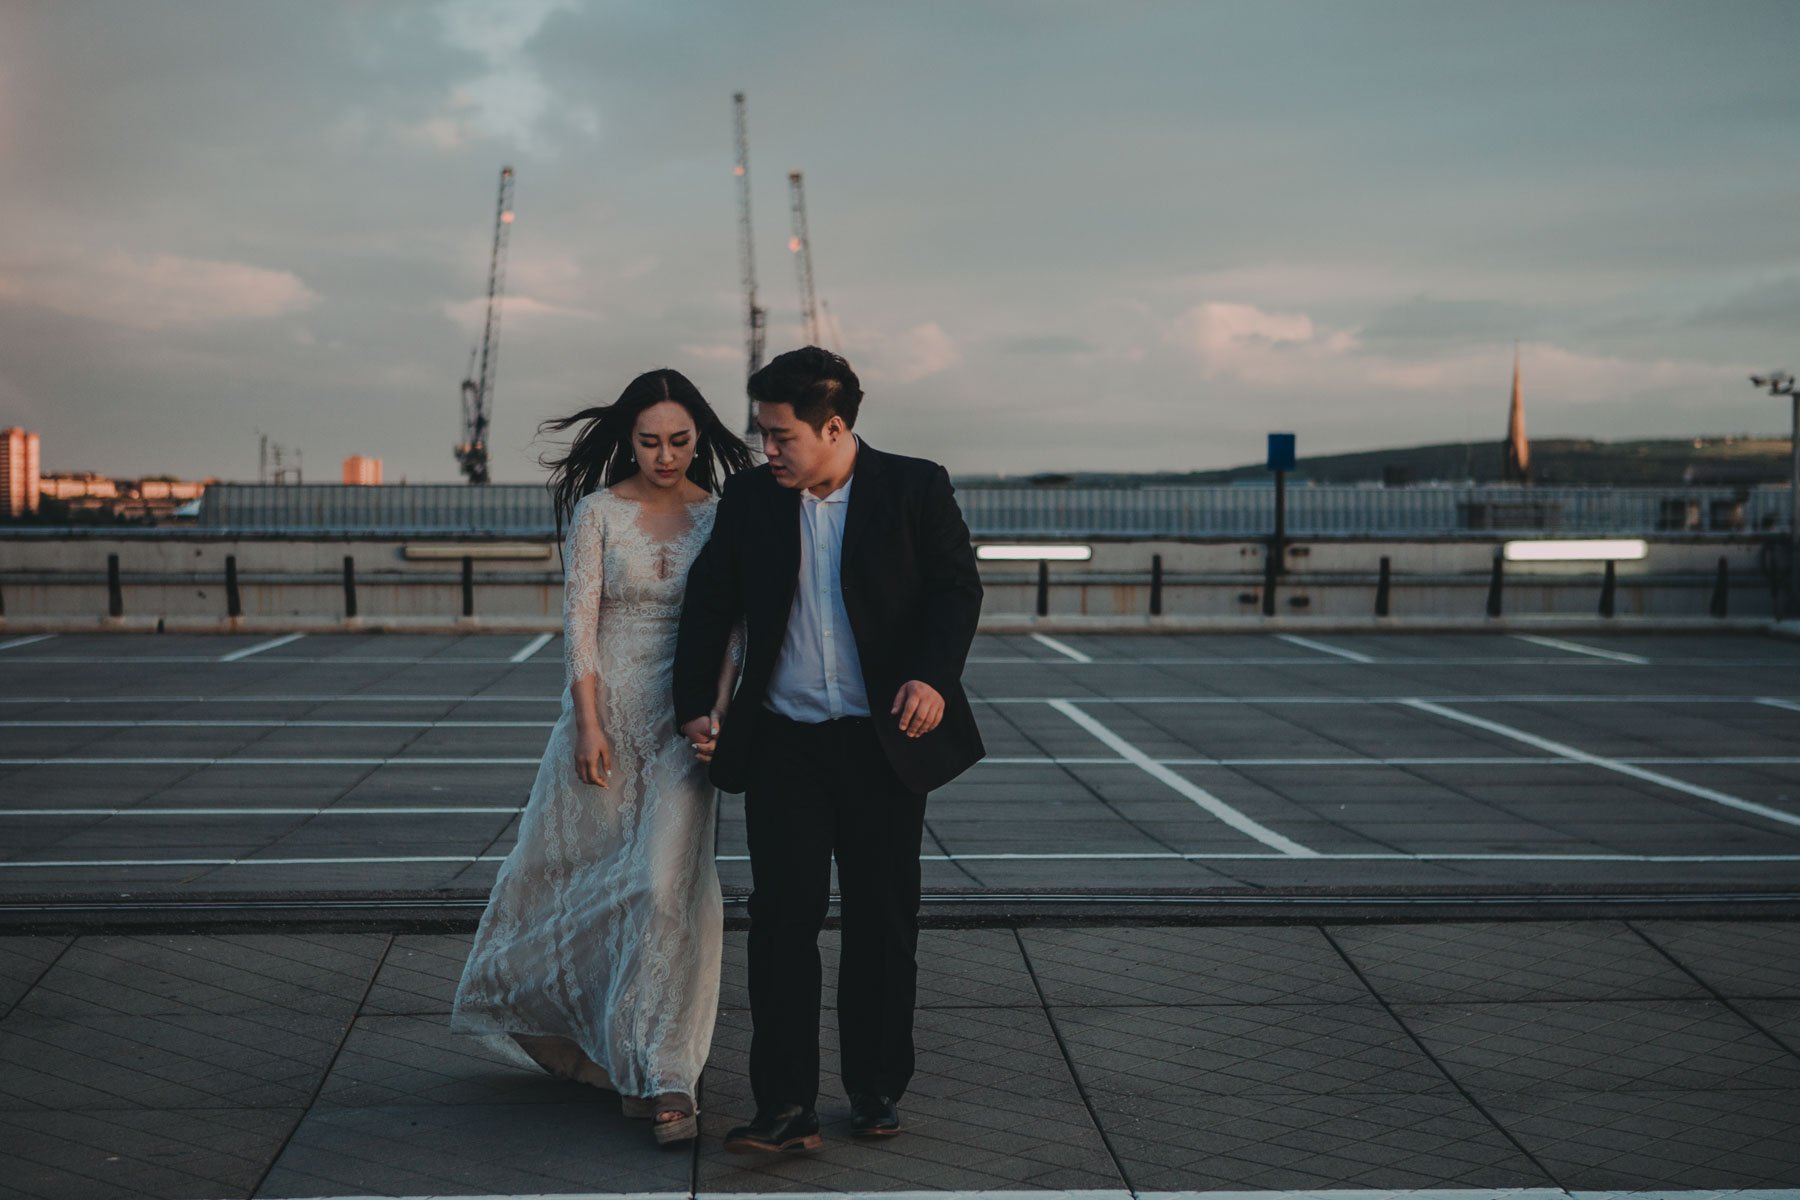 Newcastle City Wedding - night portrait of bride and groom on rooftop